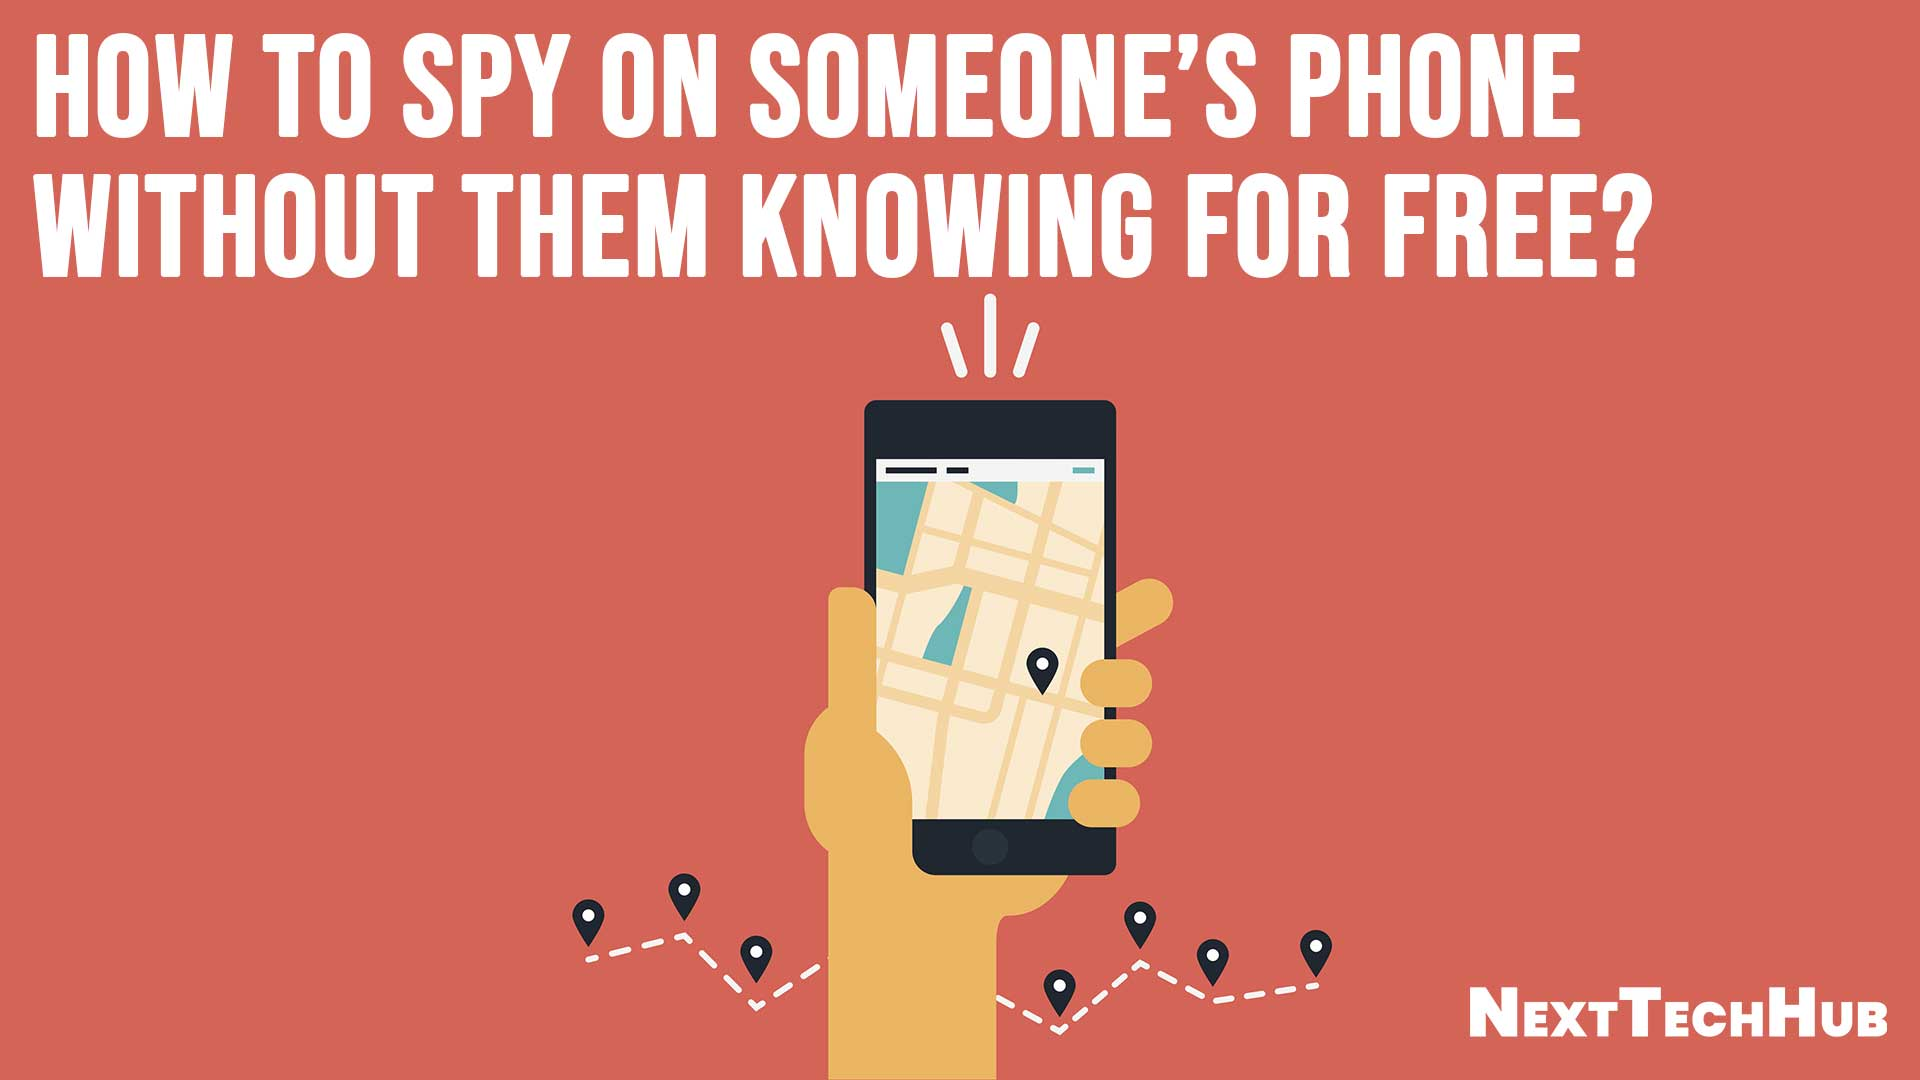 How to Spy On Someones Phone without Them Knowing for Free